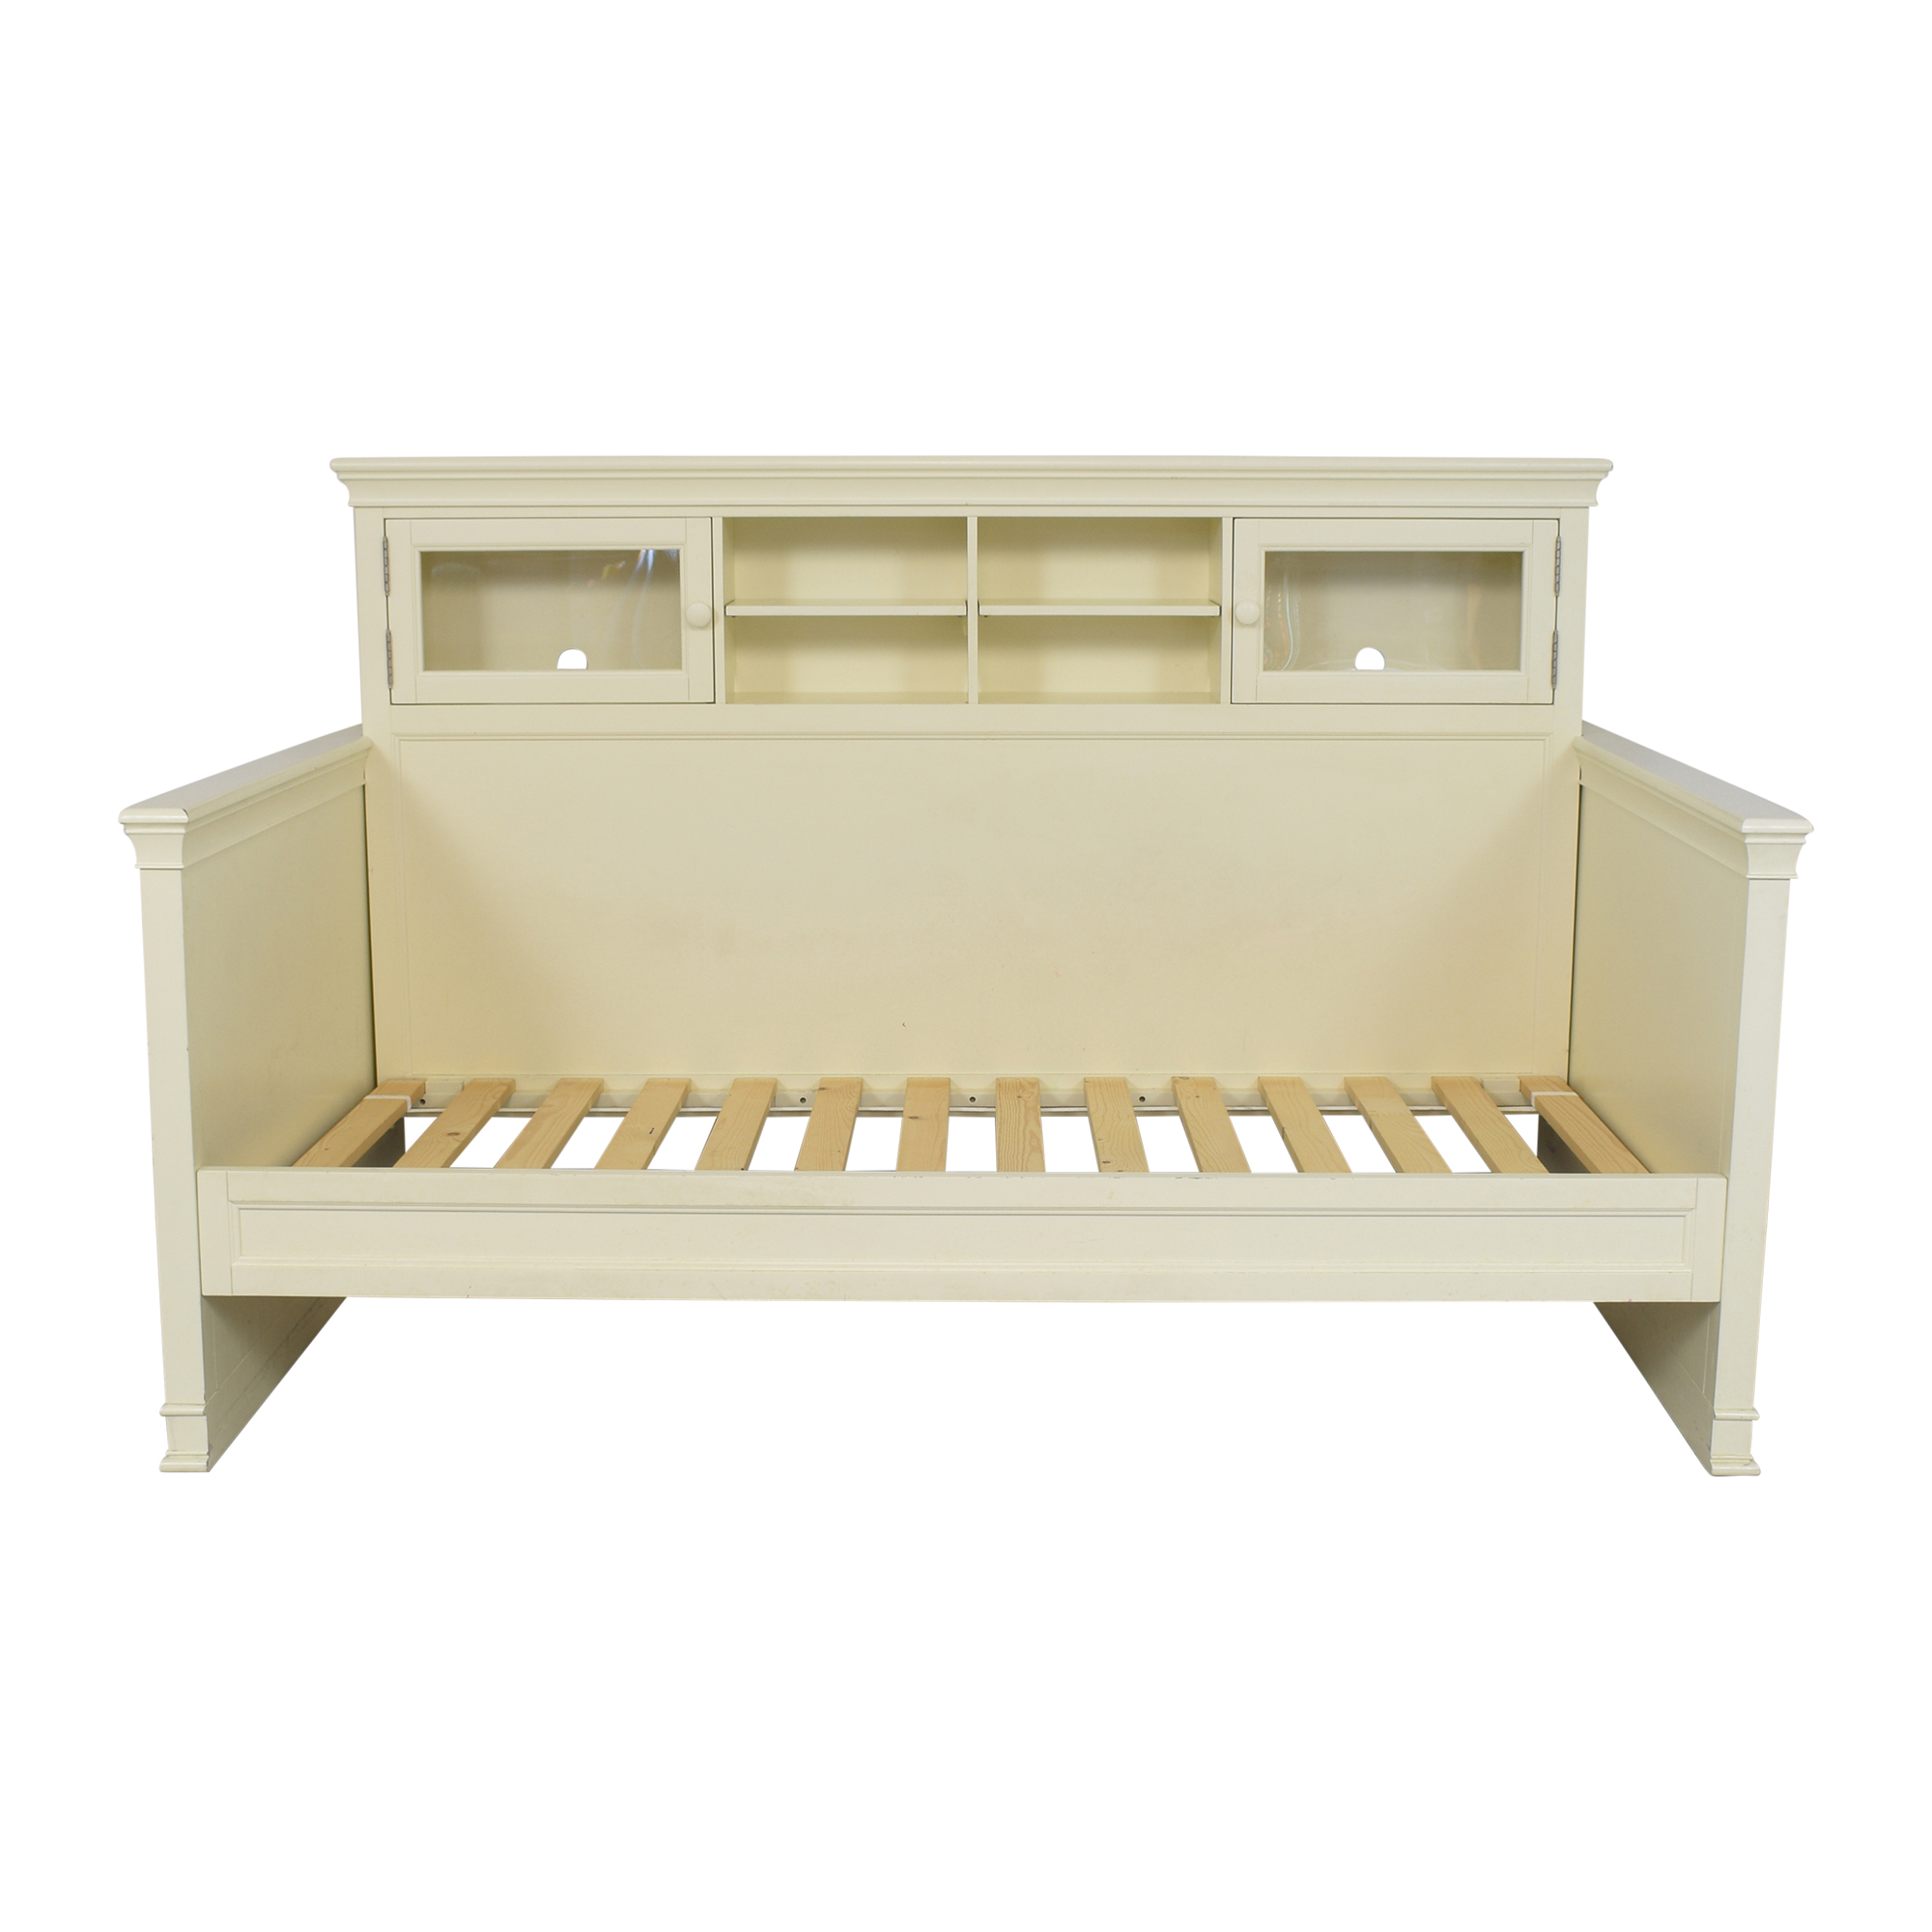 Pottery Barn Teen Pottery Barn Teen Display-It Daybed nj